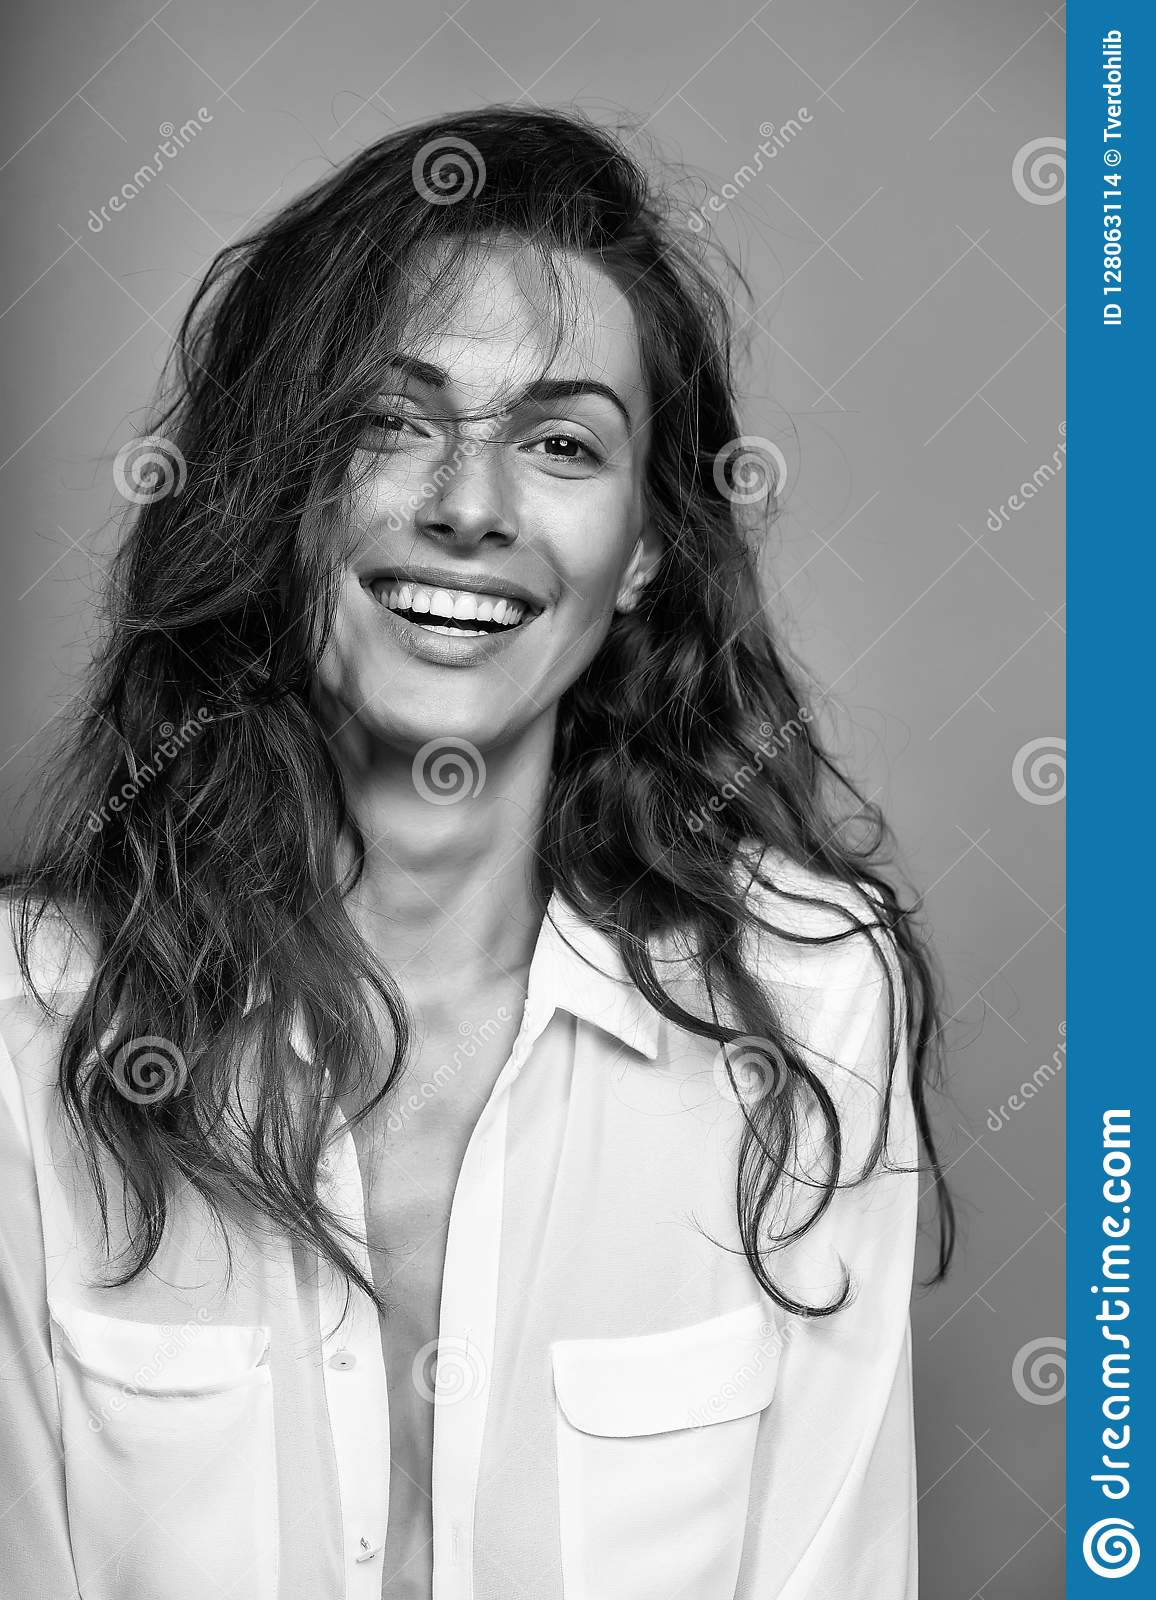 07f051f654 Young woman with pretty face and long brunette curly hair in white shirt  has slim body in studio on grey background